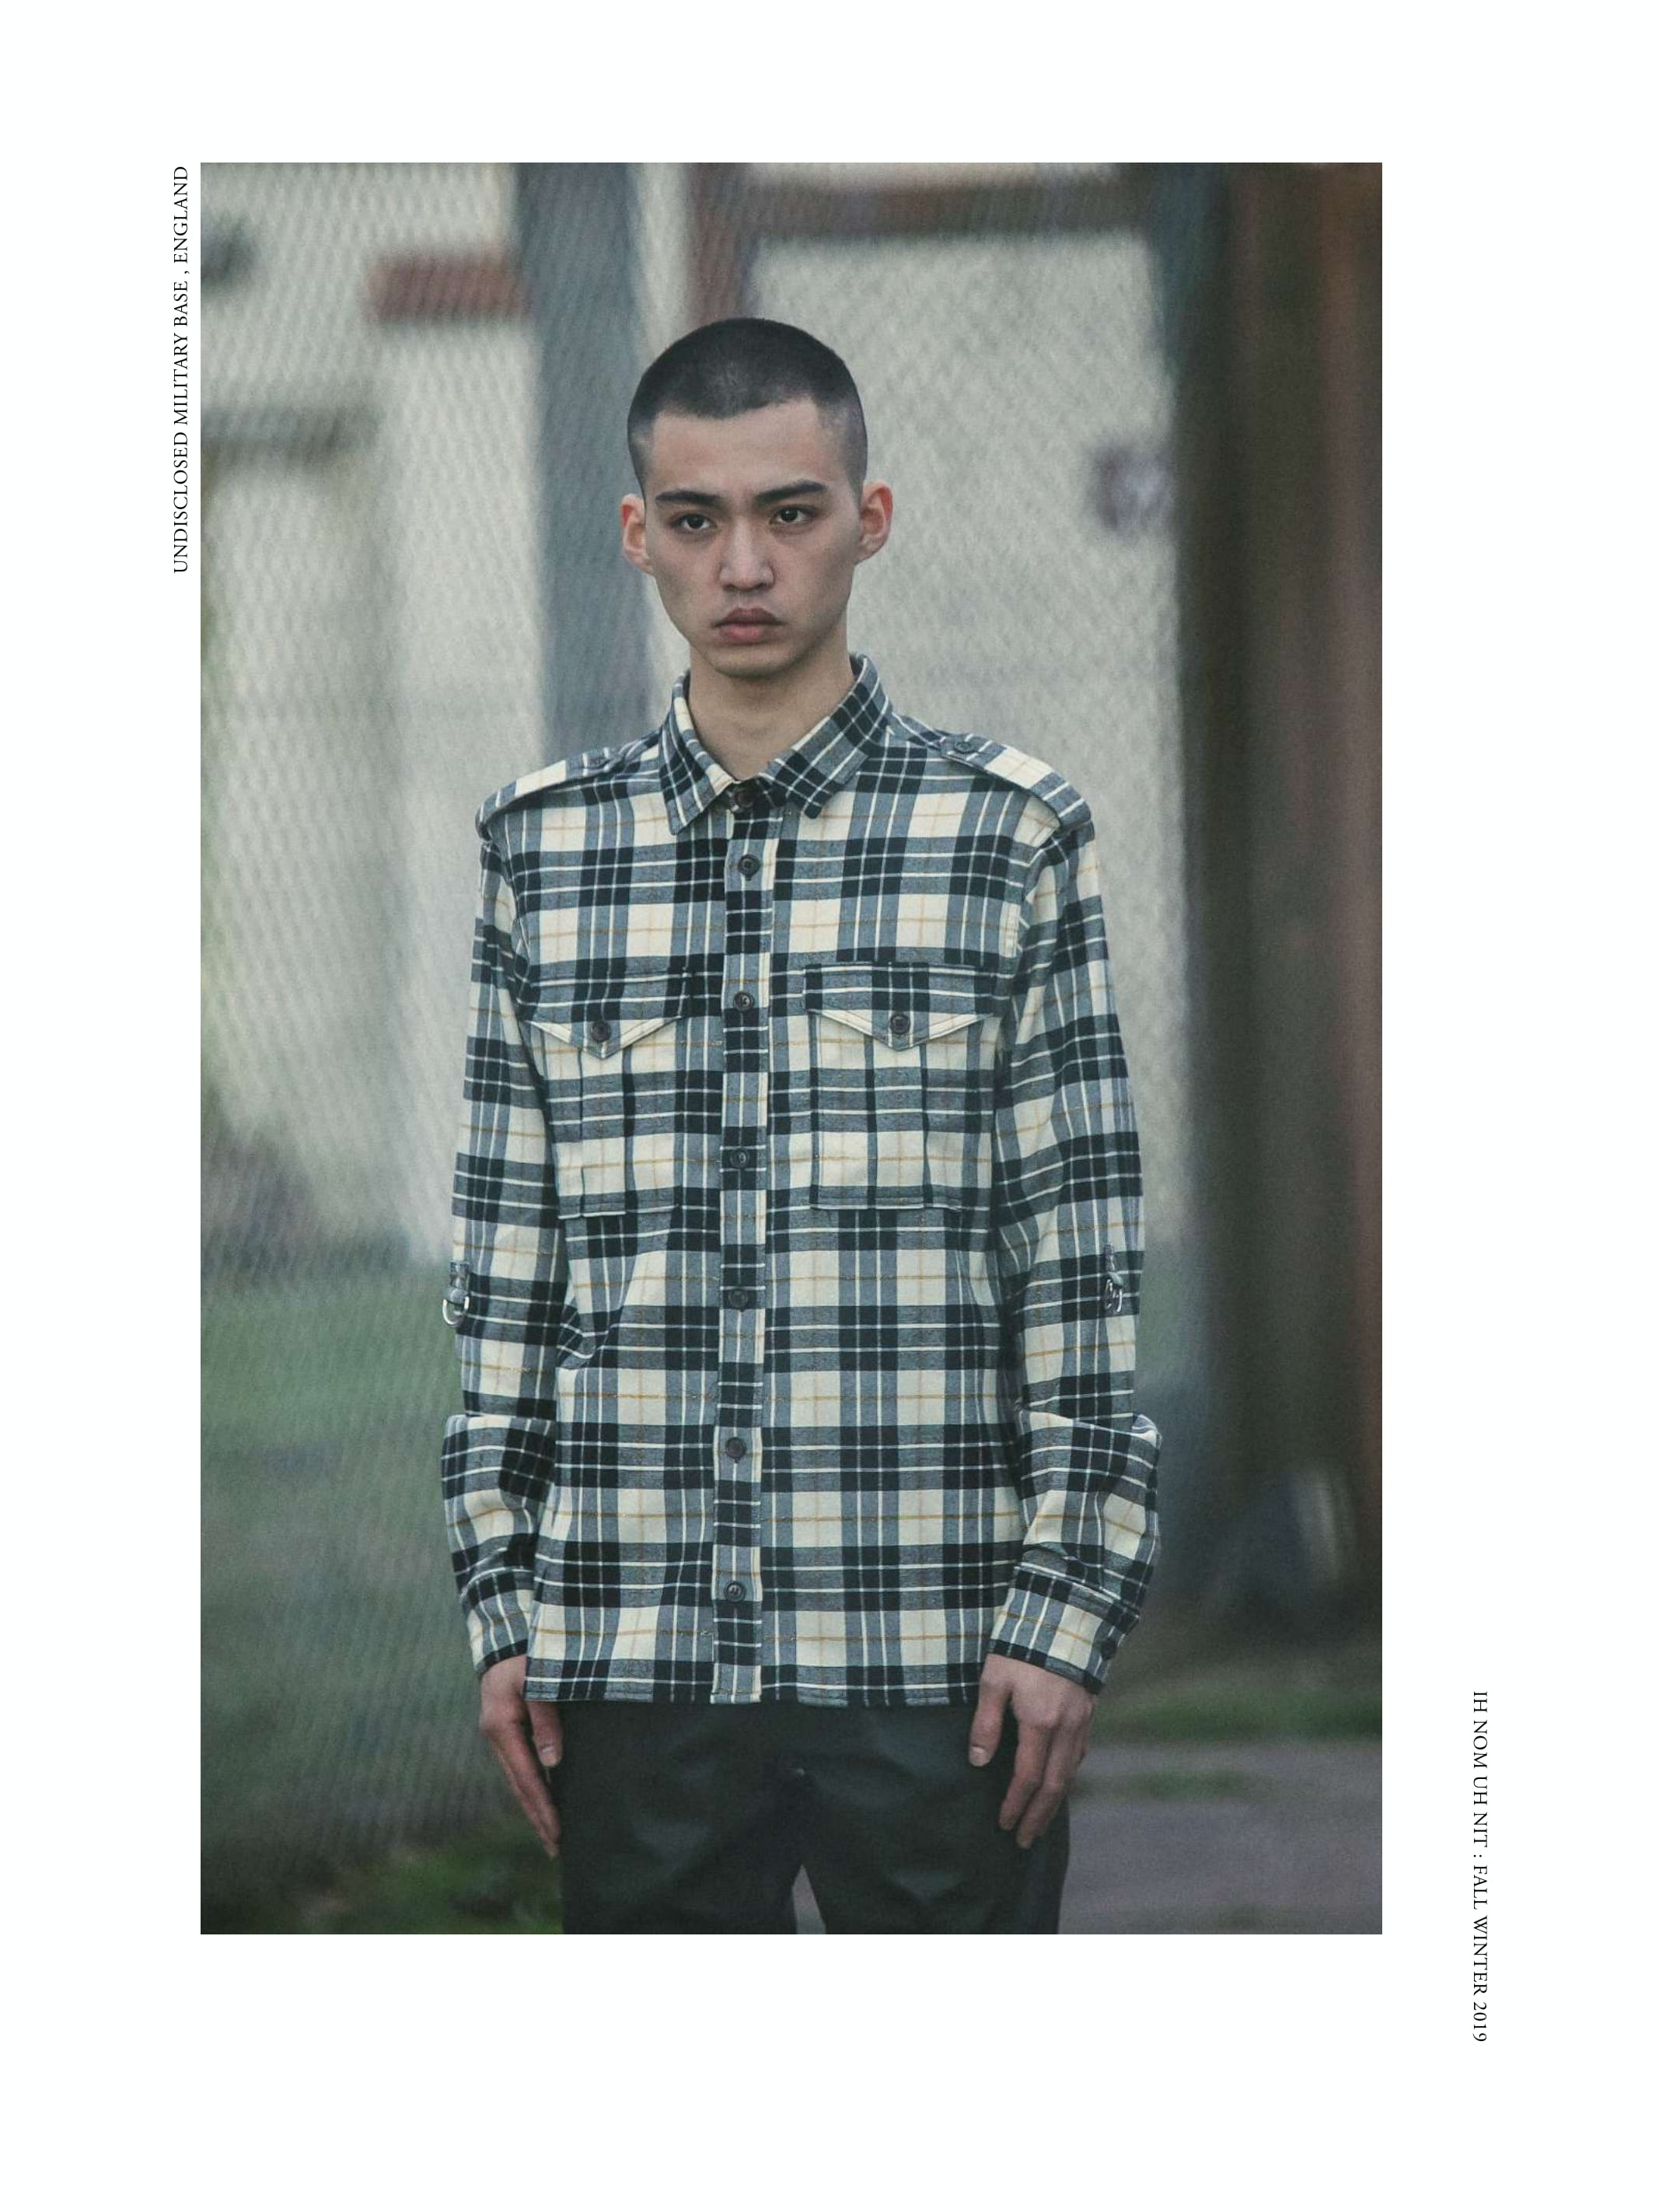 FW19 MAN LOOK BOOK -29.jpg